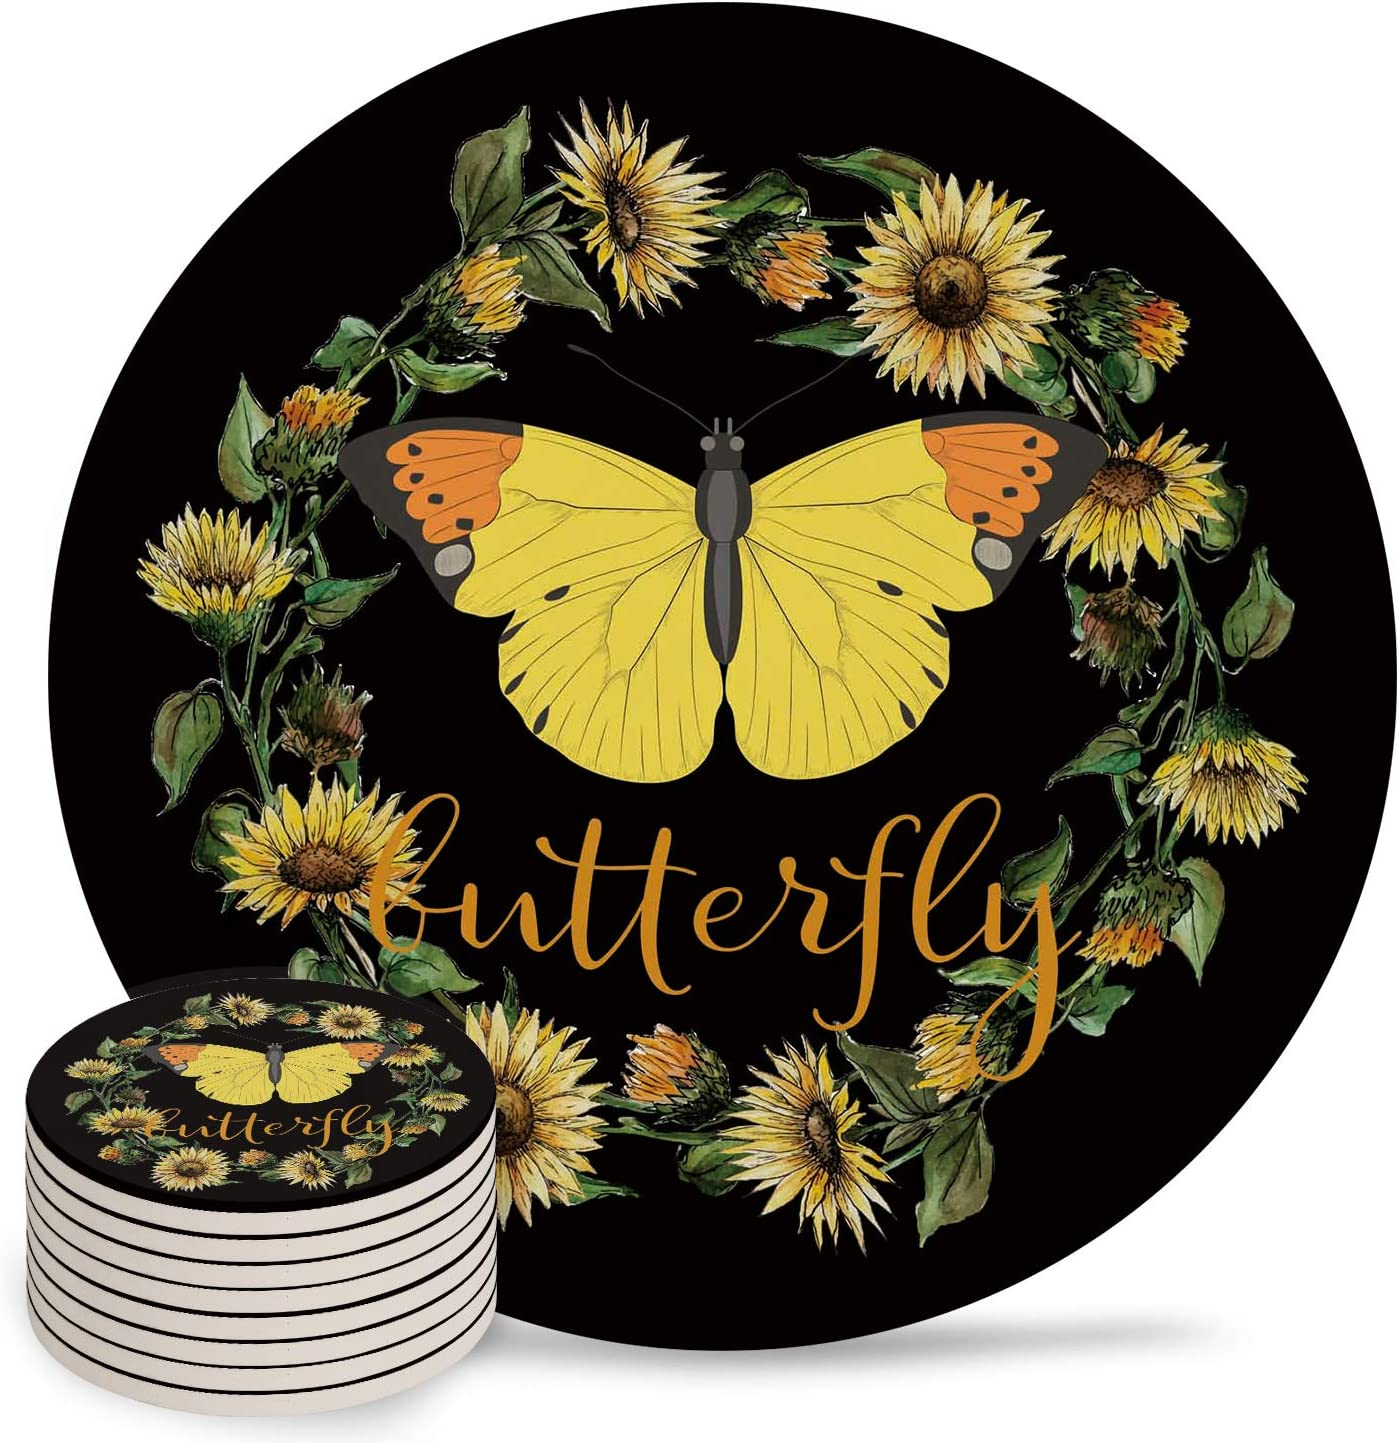 Butterfly Albuquerque Mall Max 82% OFF Ceramic Coasters for Drinks Cup Absorbent Set 8-Piece